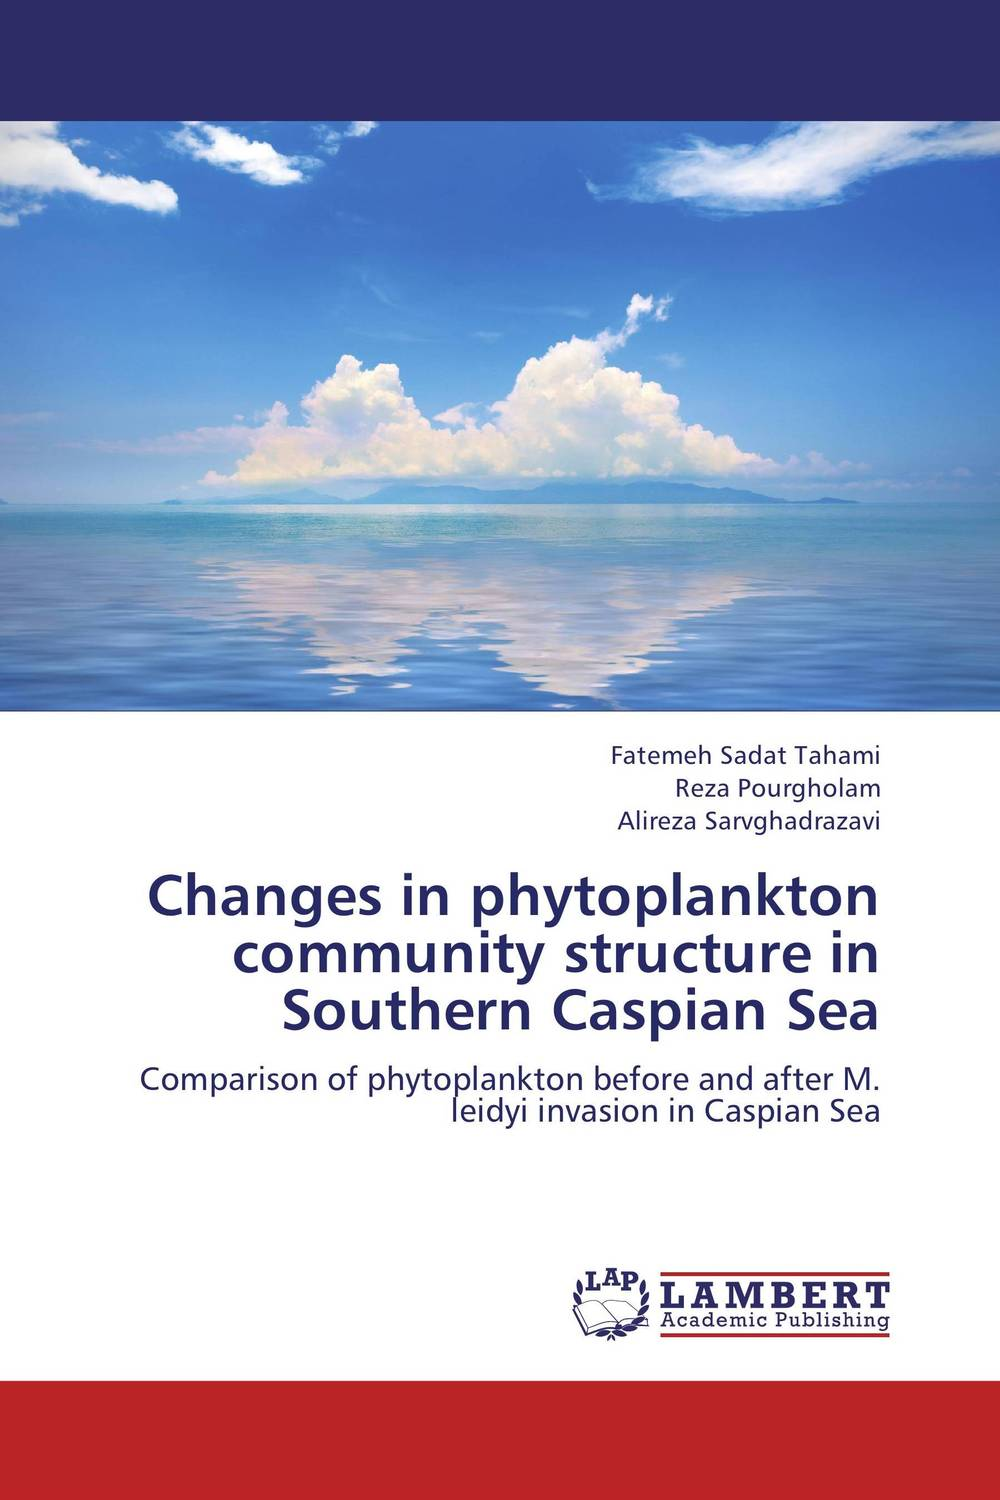 Changes in phytoplankton community structure in Southern Caspian Sea